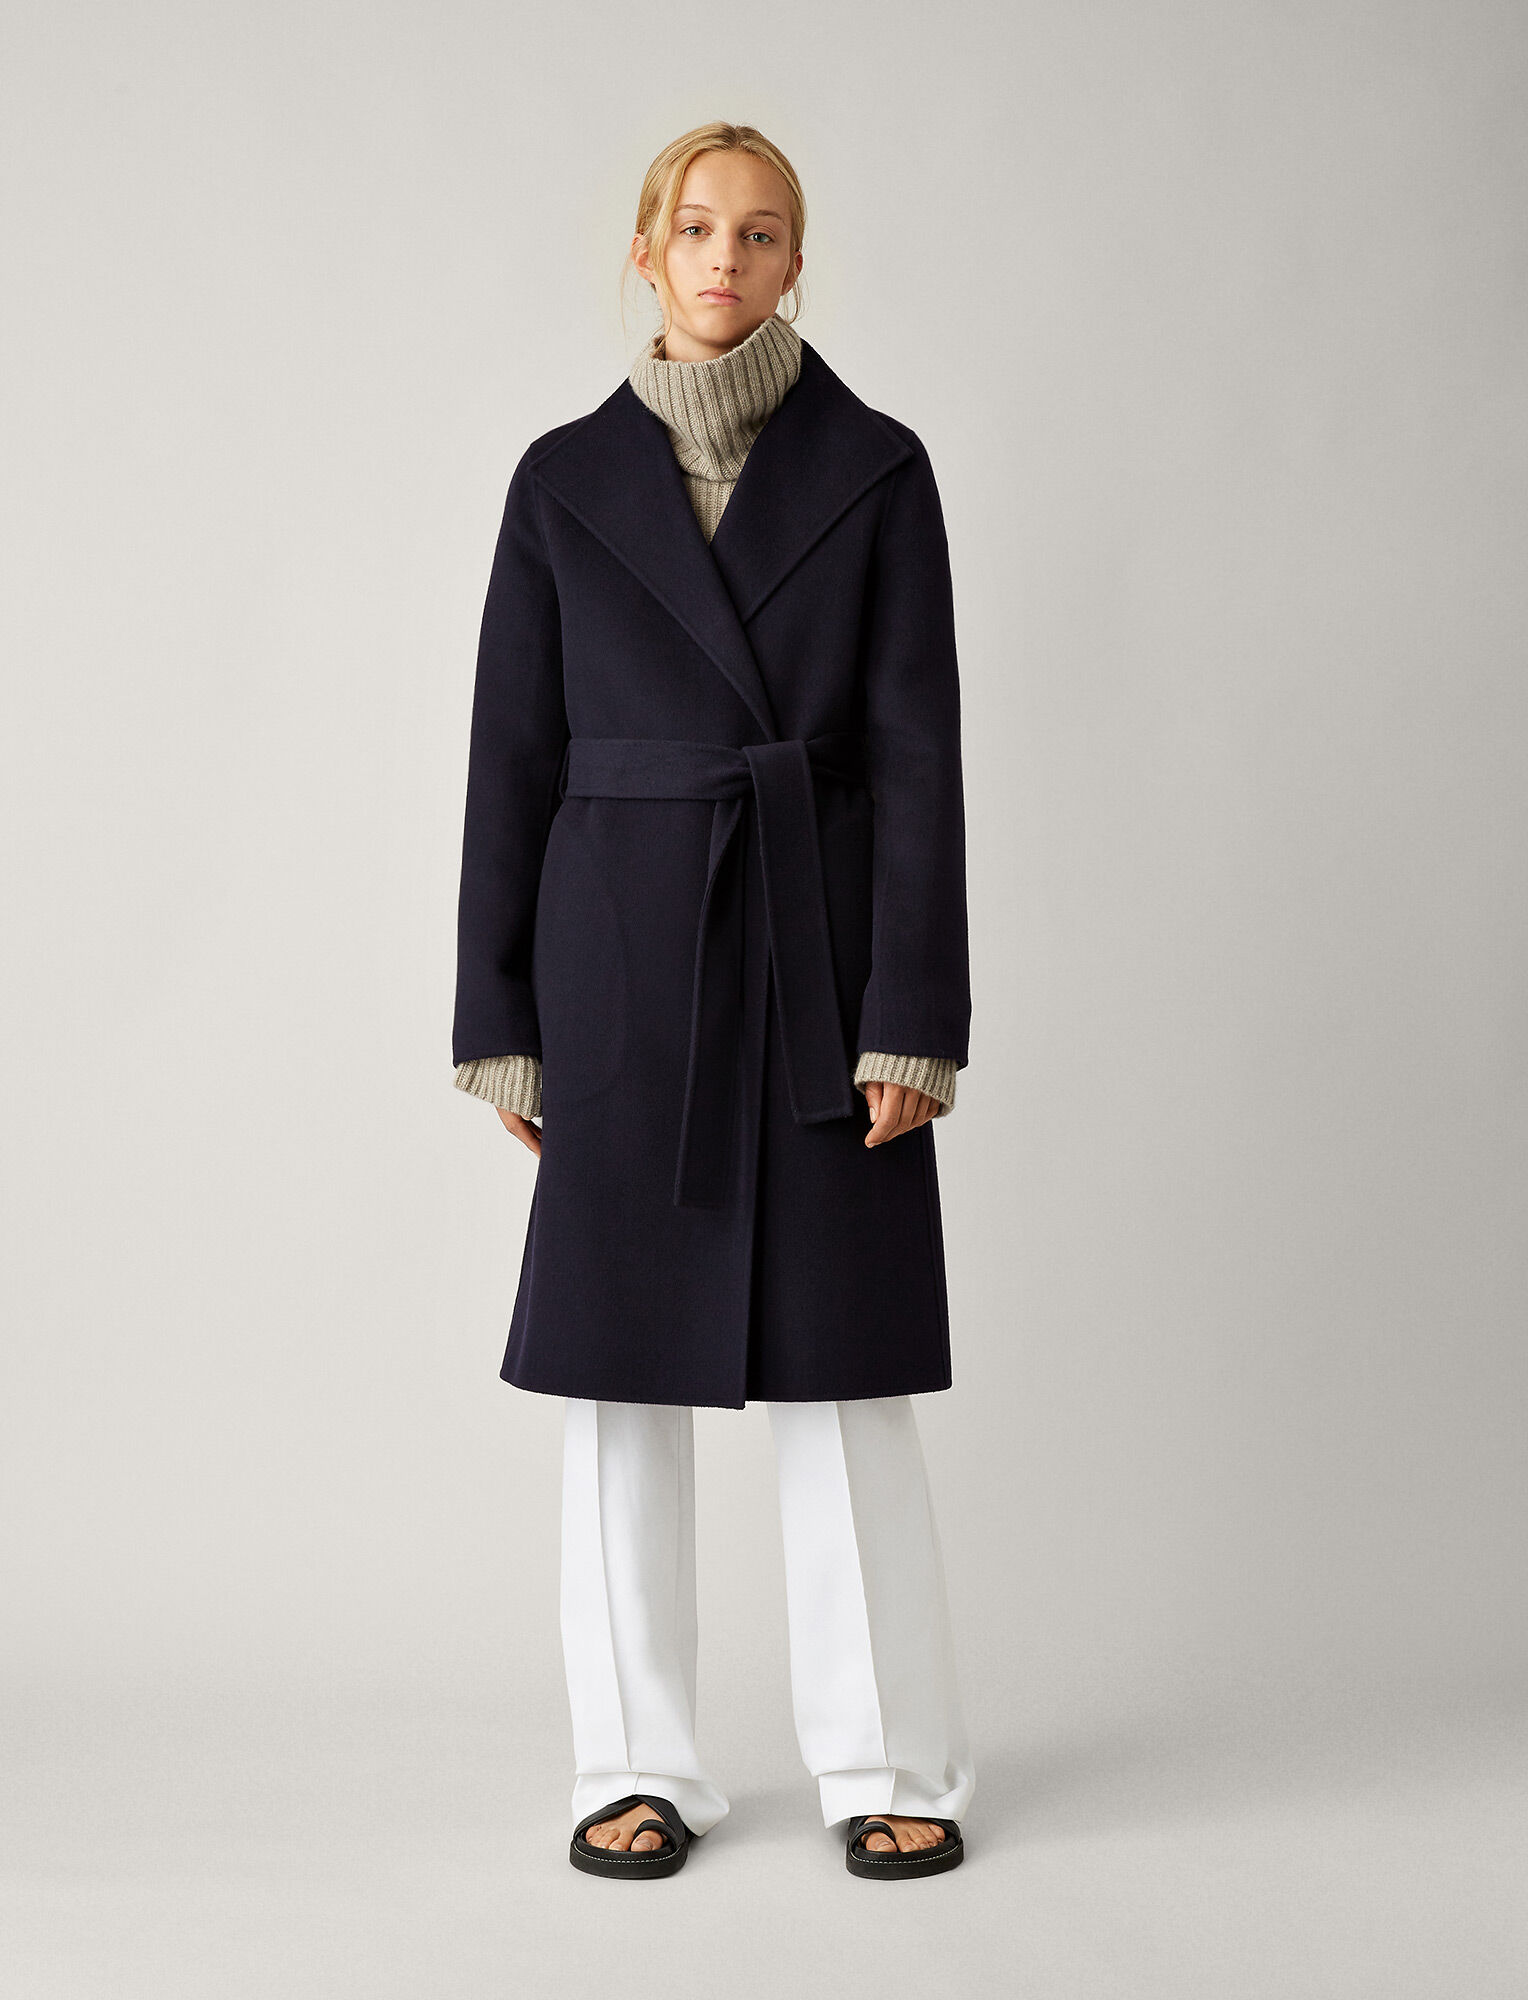 Joseph, Lima Double Face Cashmere Coat, in NAVY